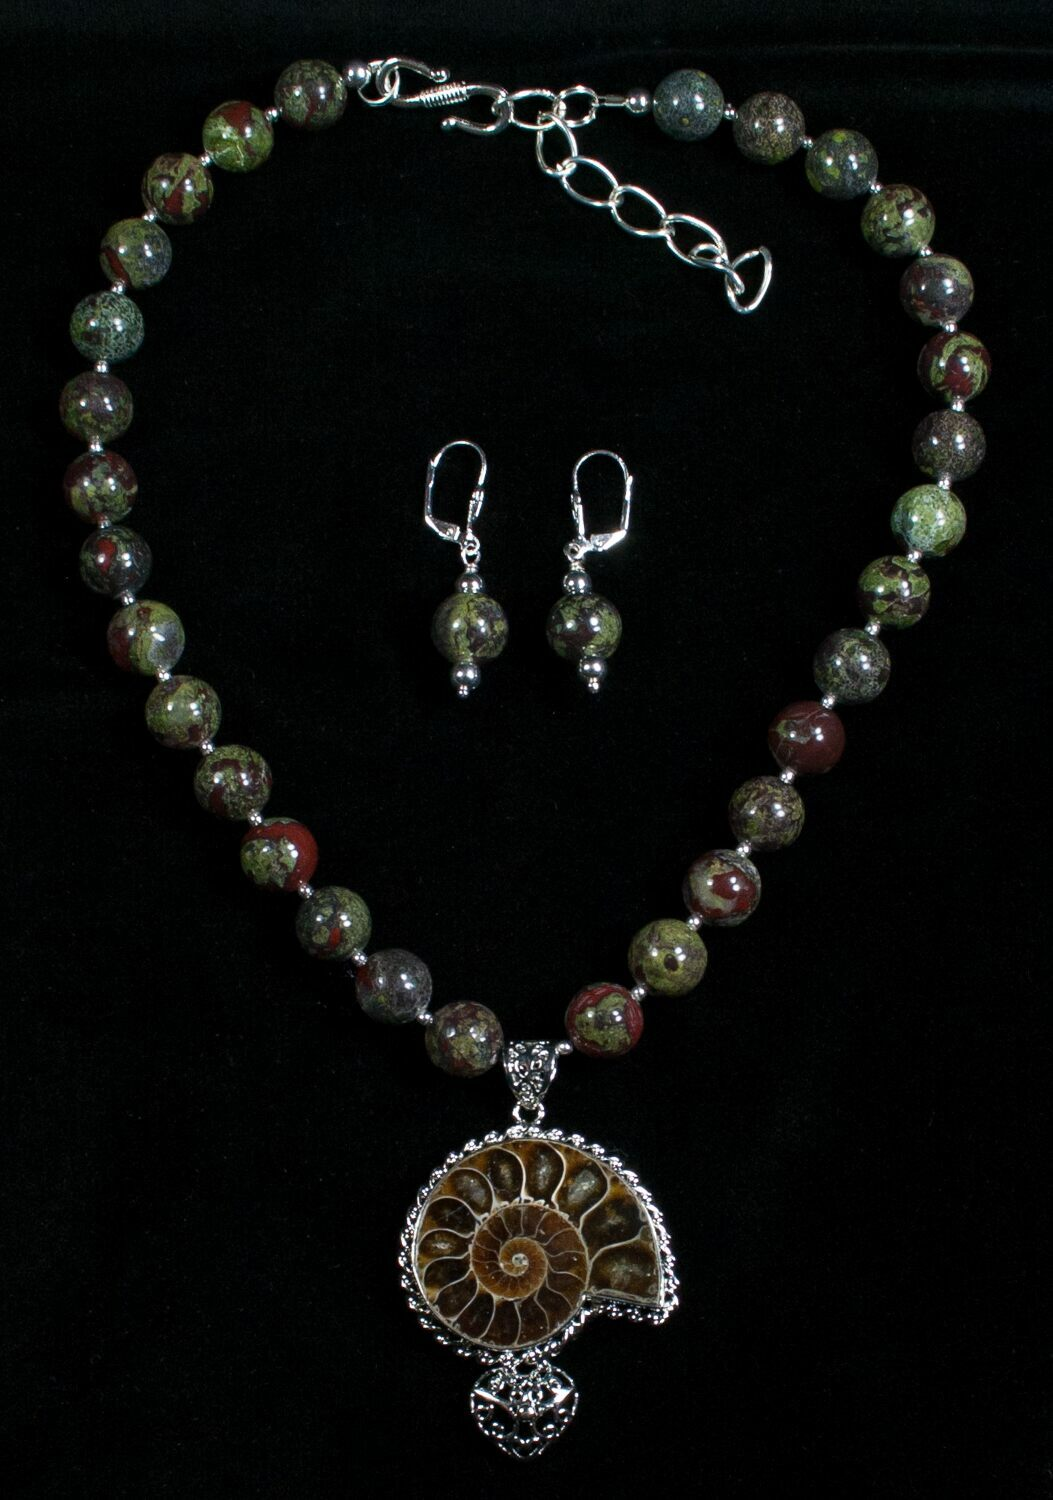 Ammonite bloodstone necklace earring set for sale 5218 ammonite bloodstone necklace earring set mozeypictures Images